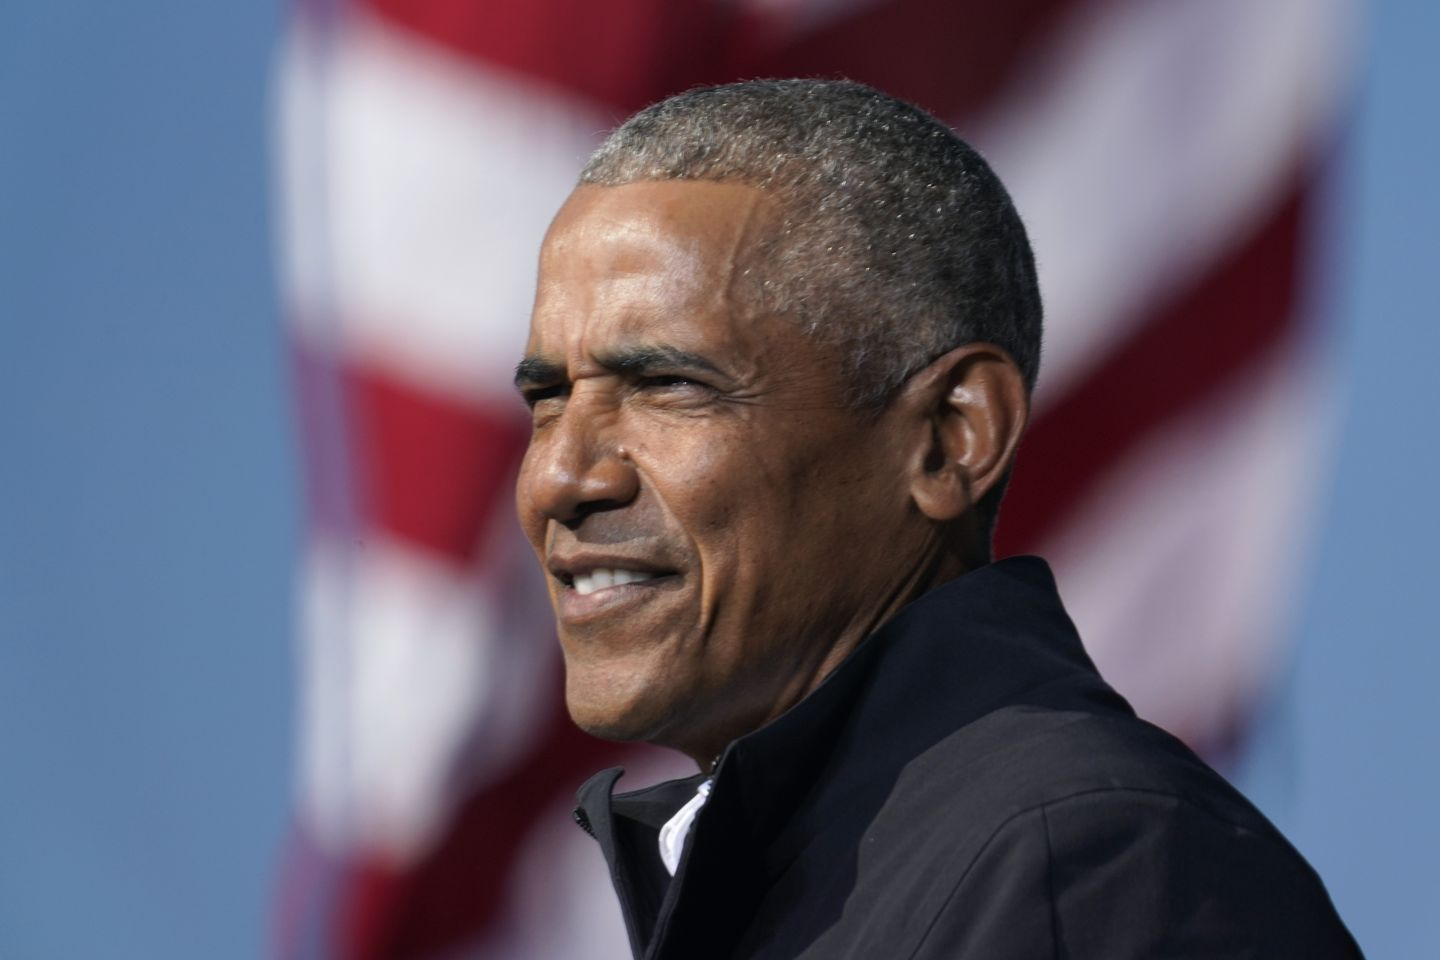 Obama critics blame former president for new COVID-19 cases on Martha's Vineyard following party thumbnail